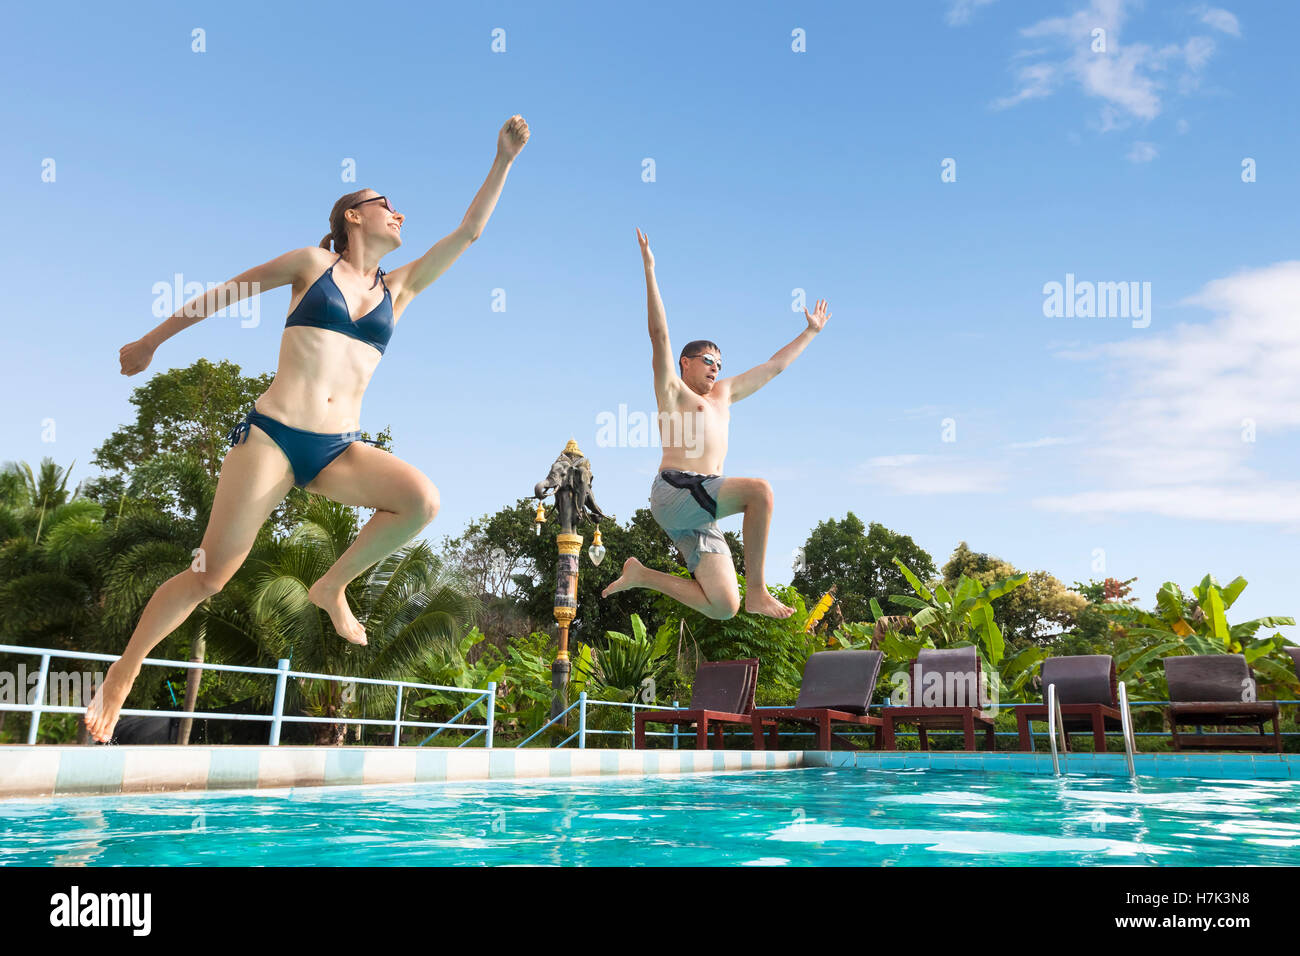 Two Friends Enjoy Jumping In The Swimming Pool At A Tropical Hotel Resort